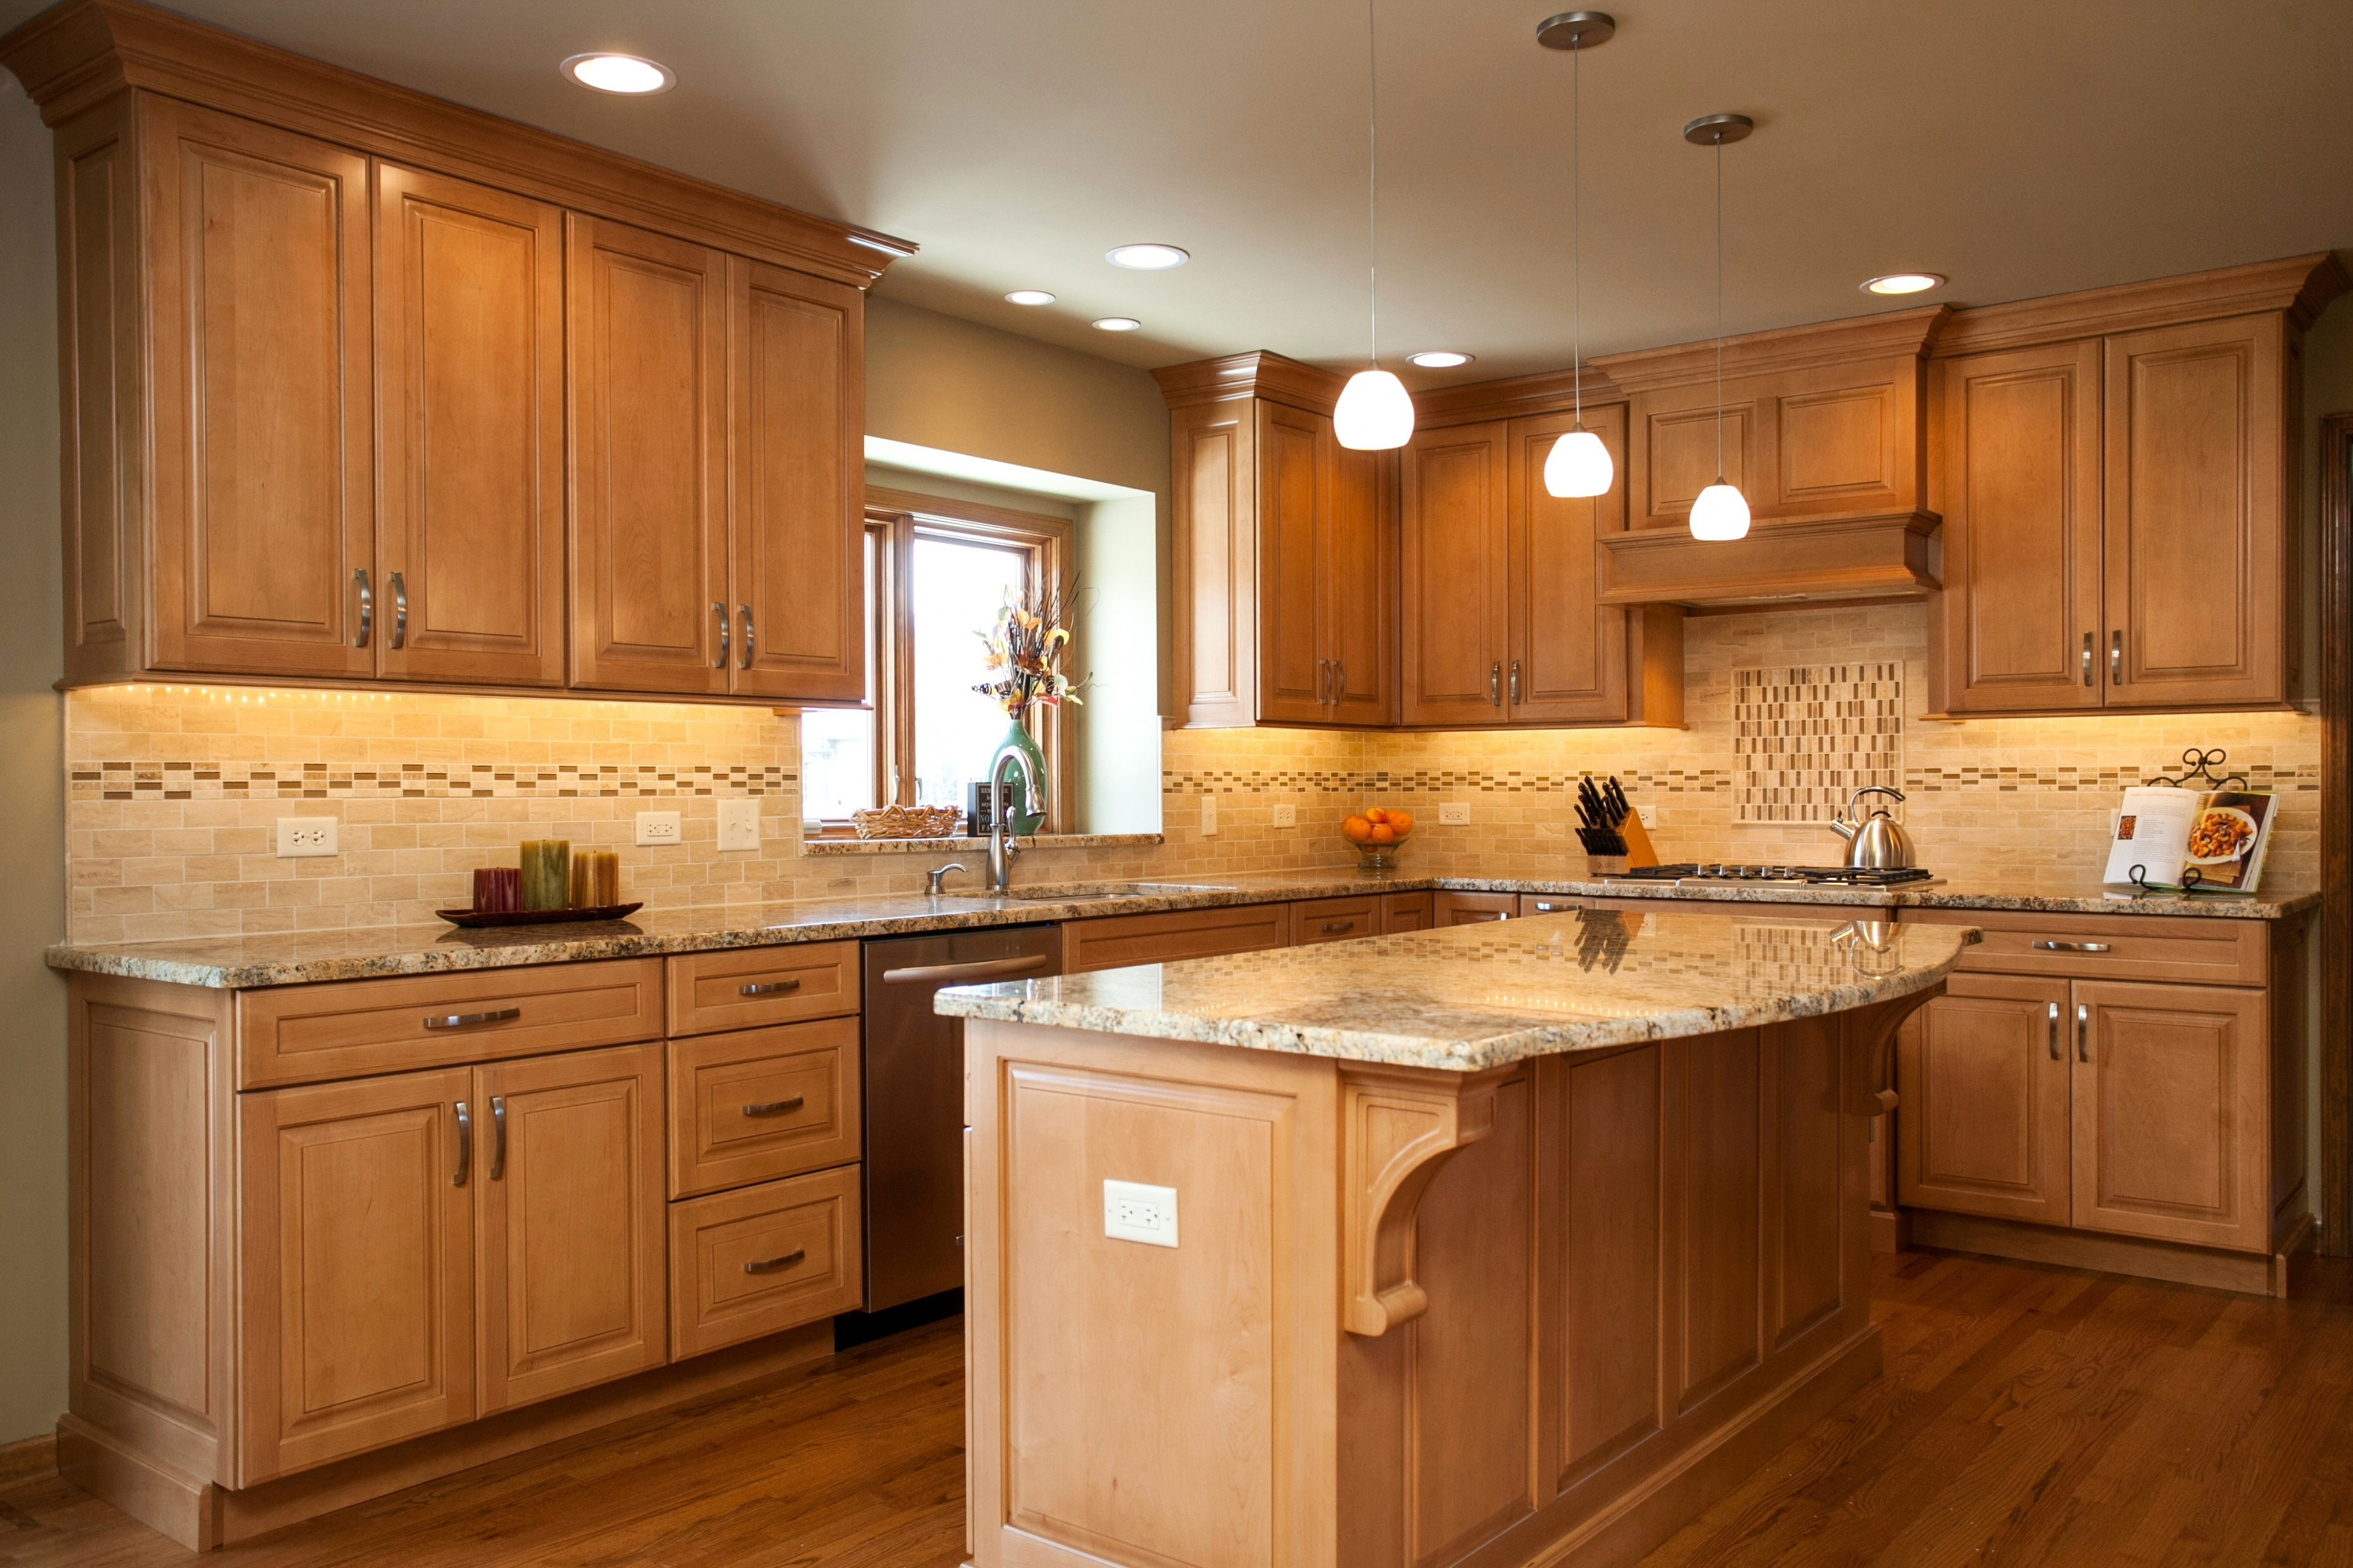 hickory hardwood floor stain colors of cabinet stain colors jackolanternliquors with maple cabinets kitchen new kitchens with maple cabinets awesome kitchen od dlmdestmcocfamcf k2